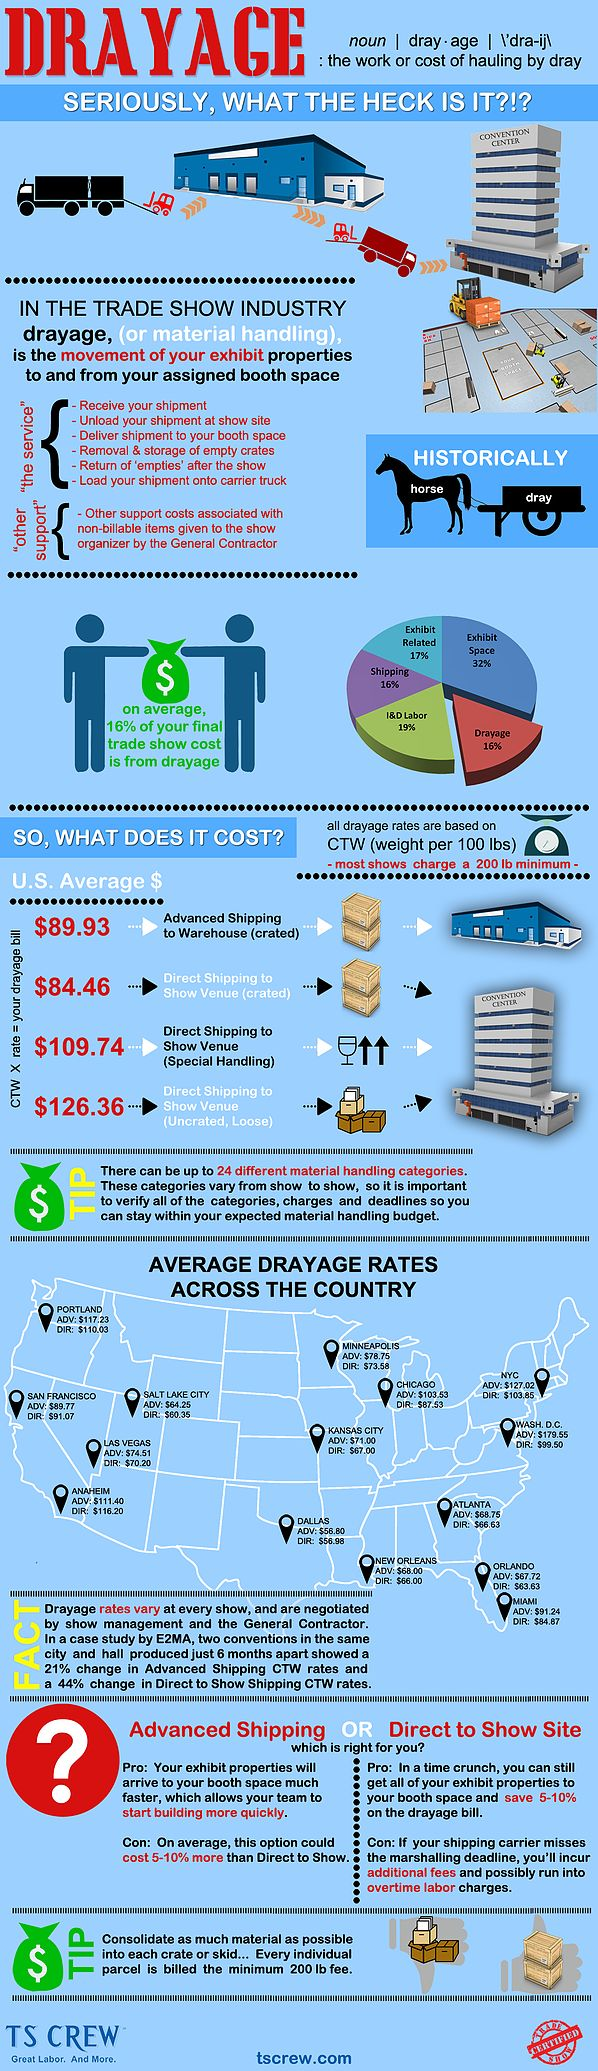 Ever wondered what drayage is or what you can expect to pay for it? Here's a handy #infographic from TS CREW that spells it all out for you!